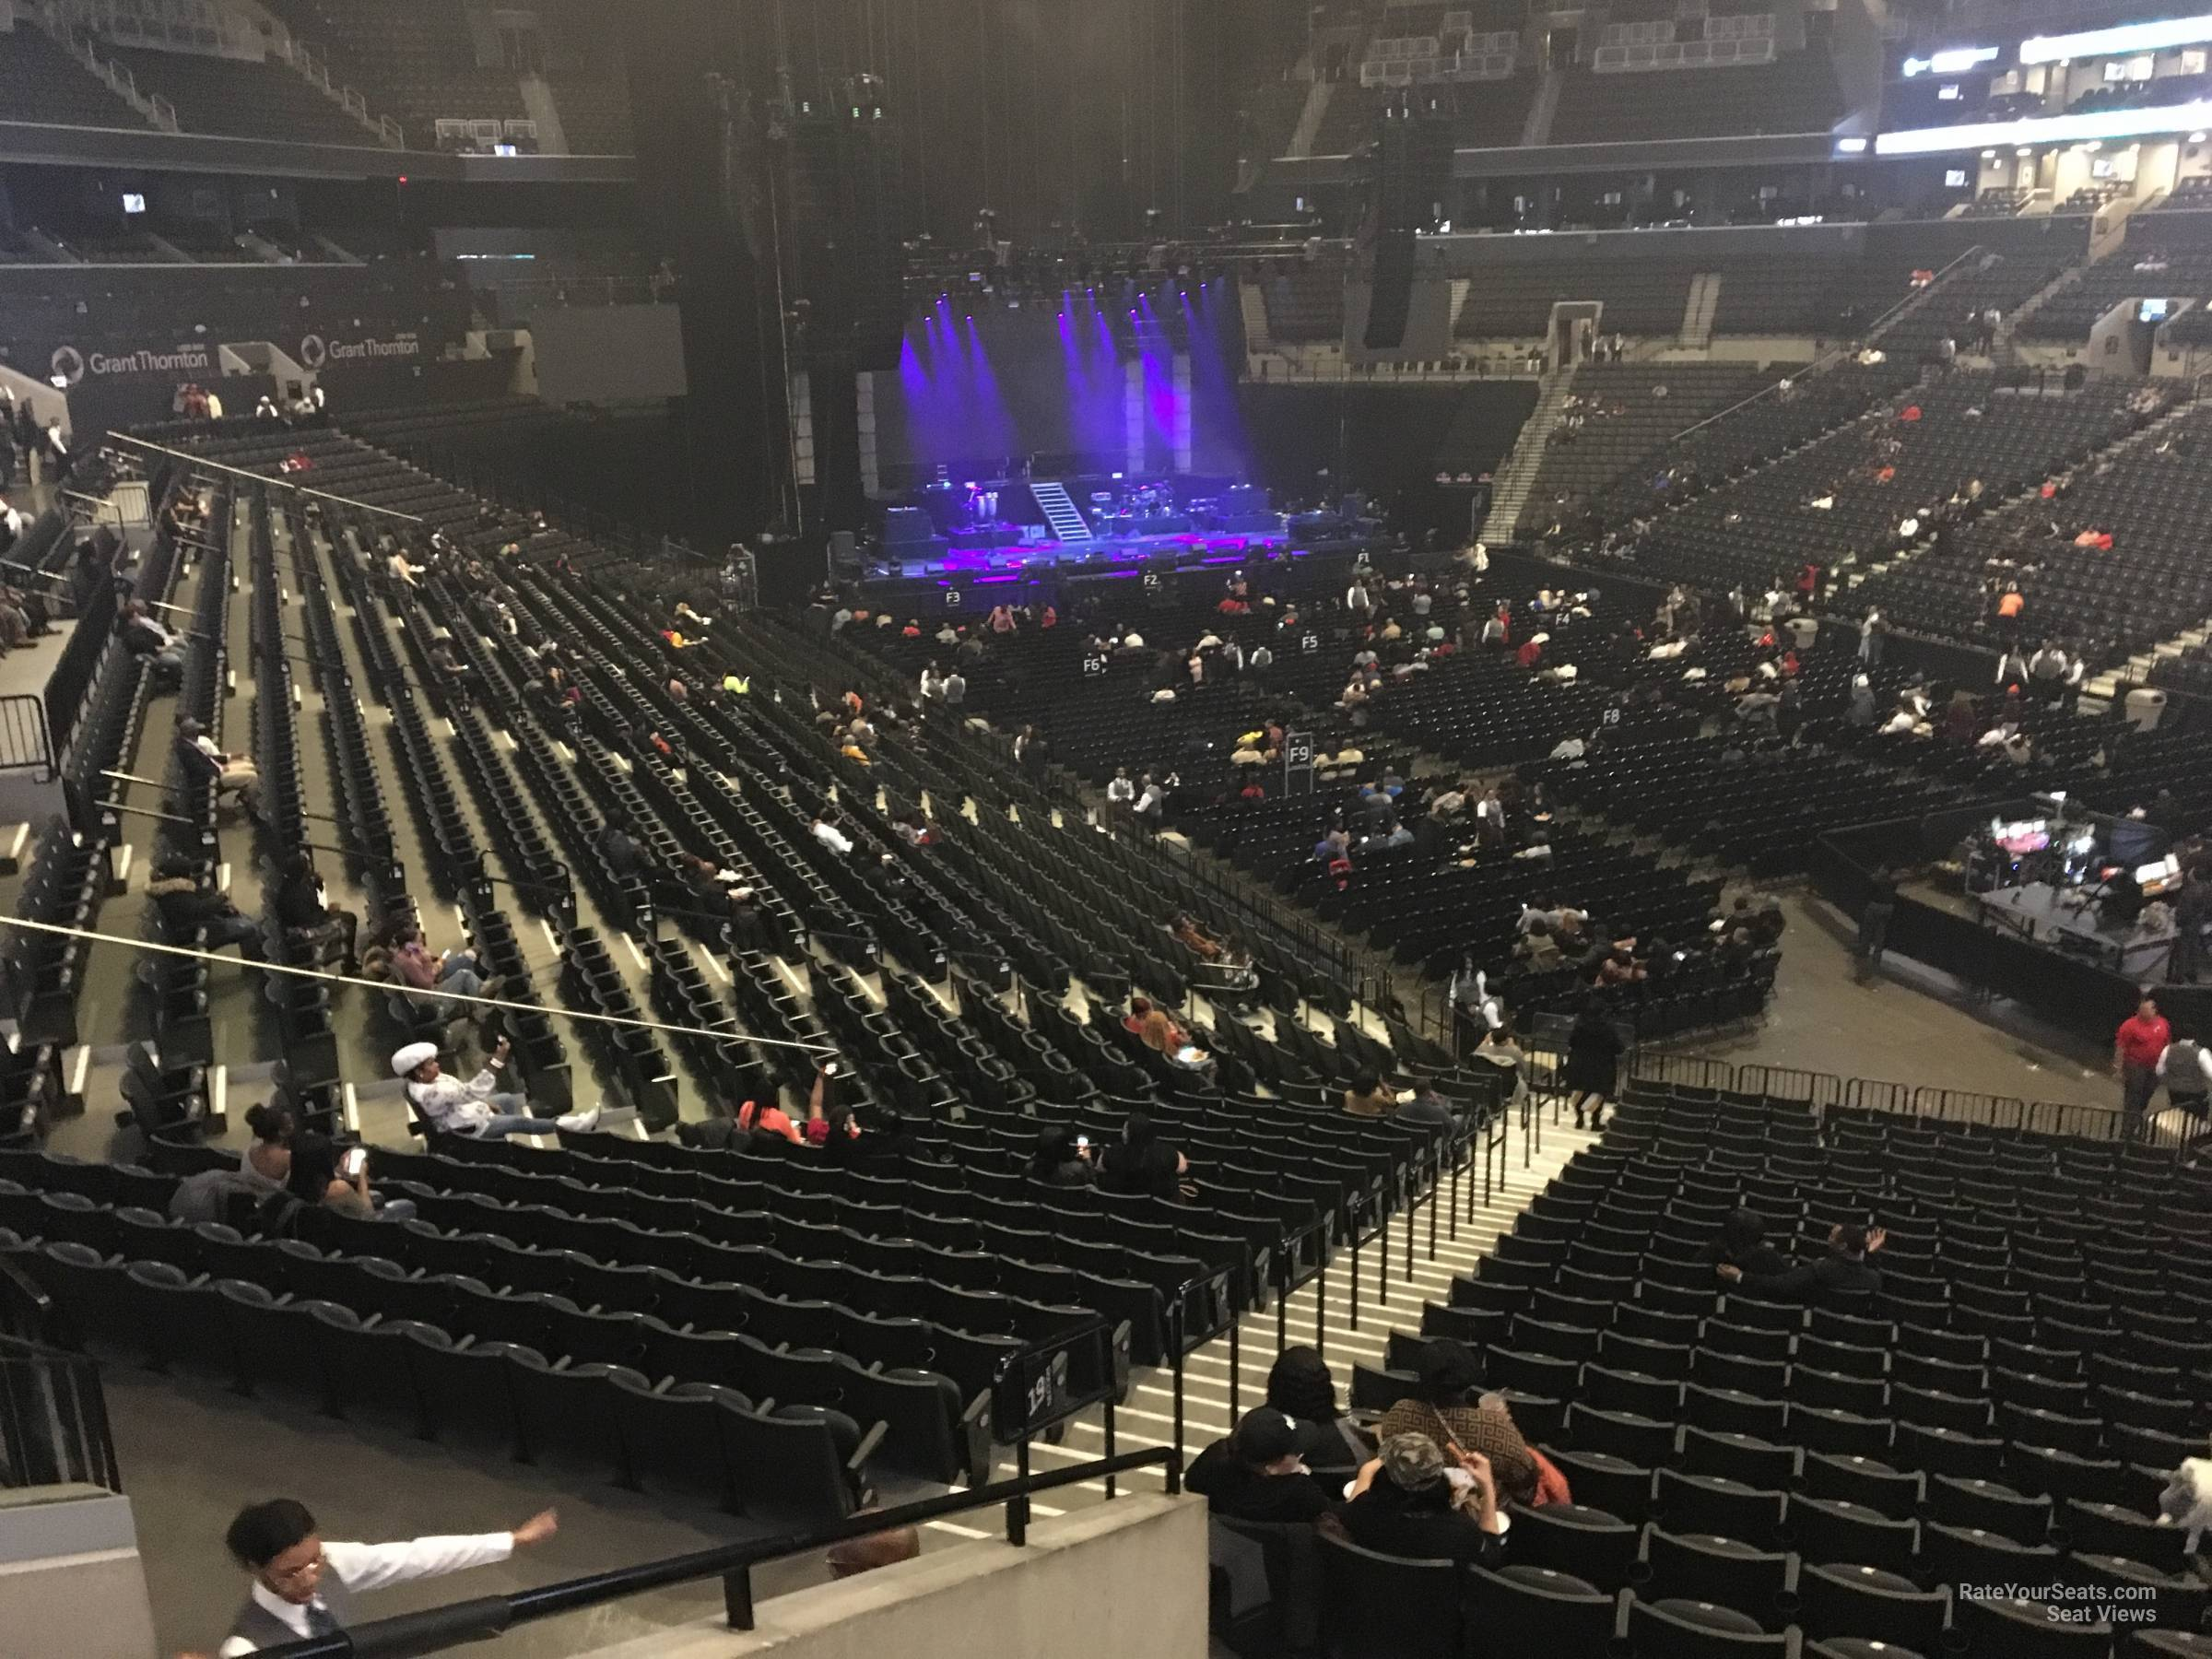 Concert Seat View for Barclays Center Section 120, Row 6